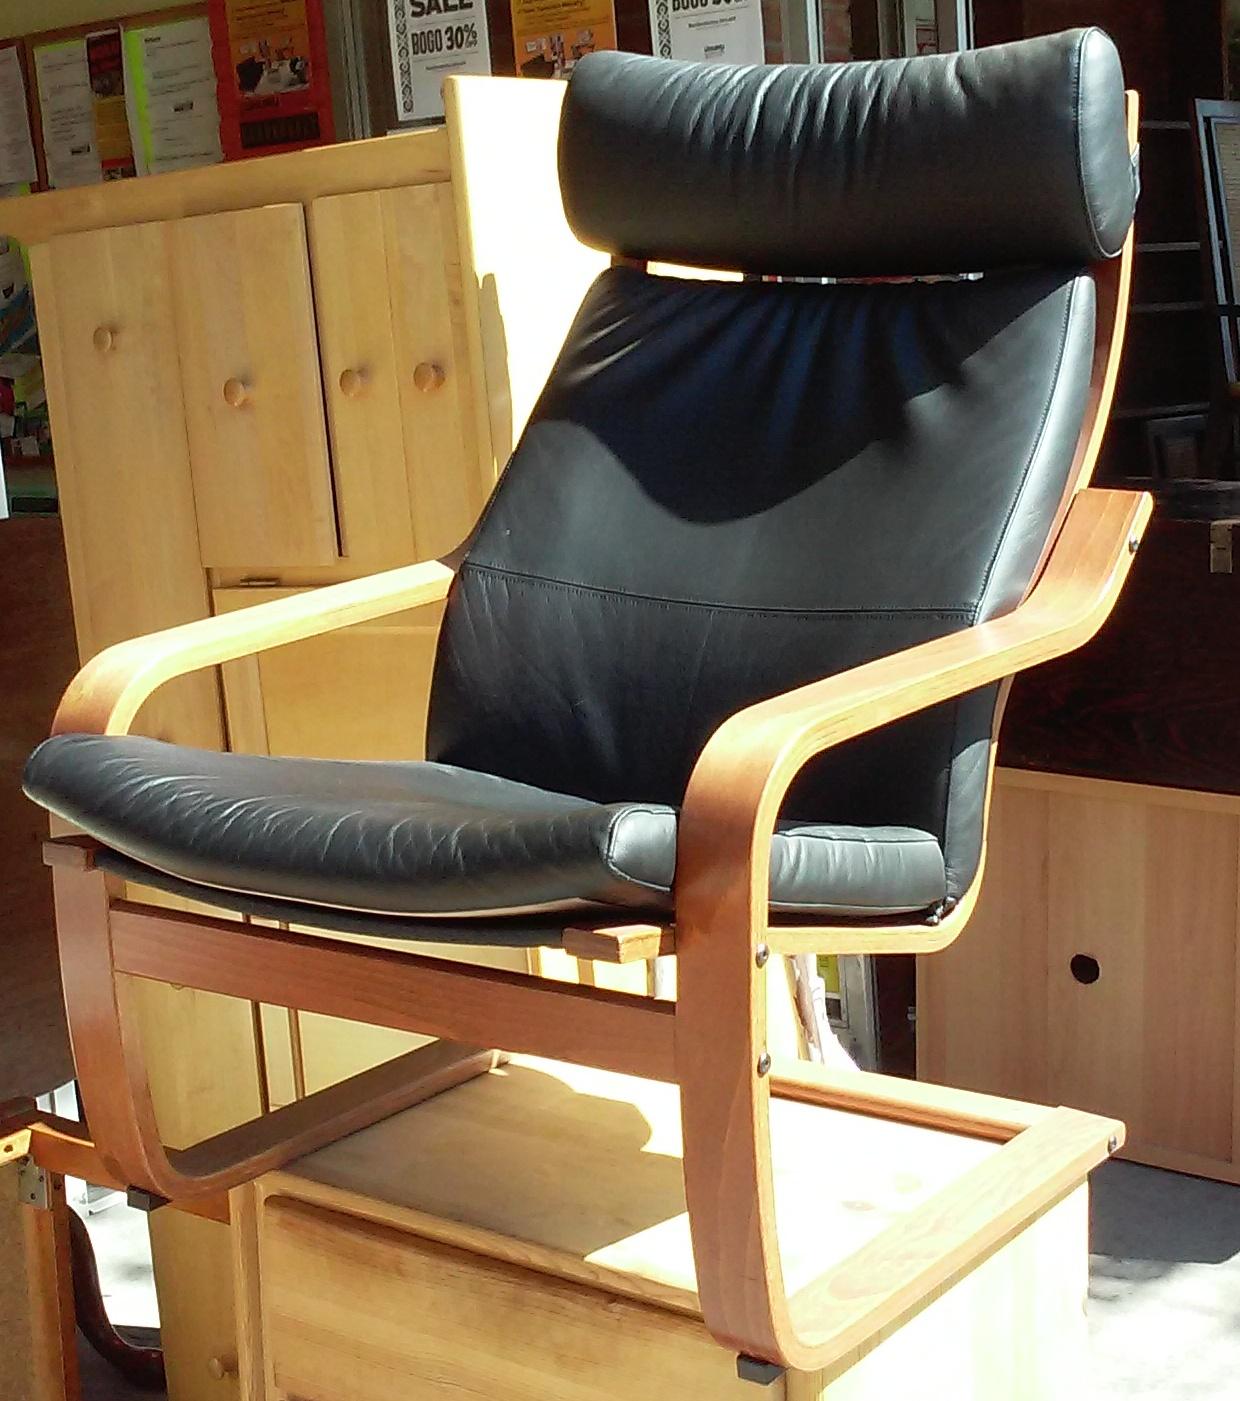 Uhuru furniture collectibles sold 2955 black leather poang chair 85 - Poang chair leather ...